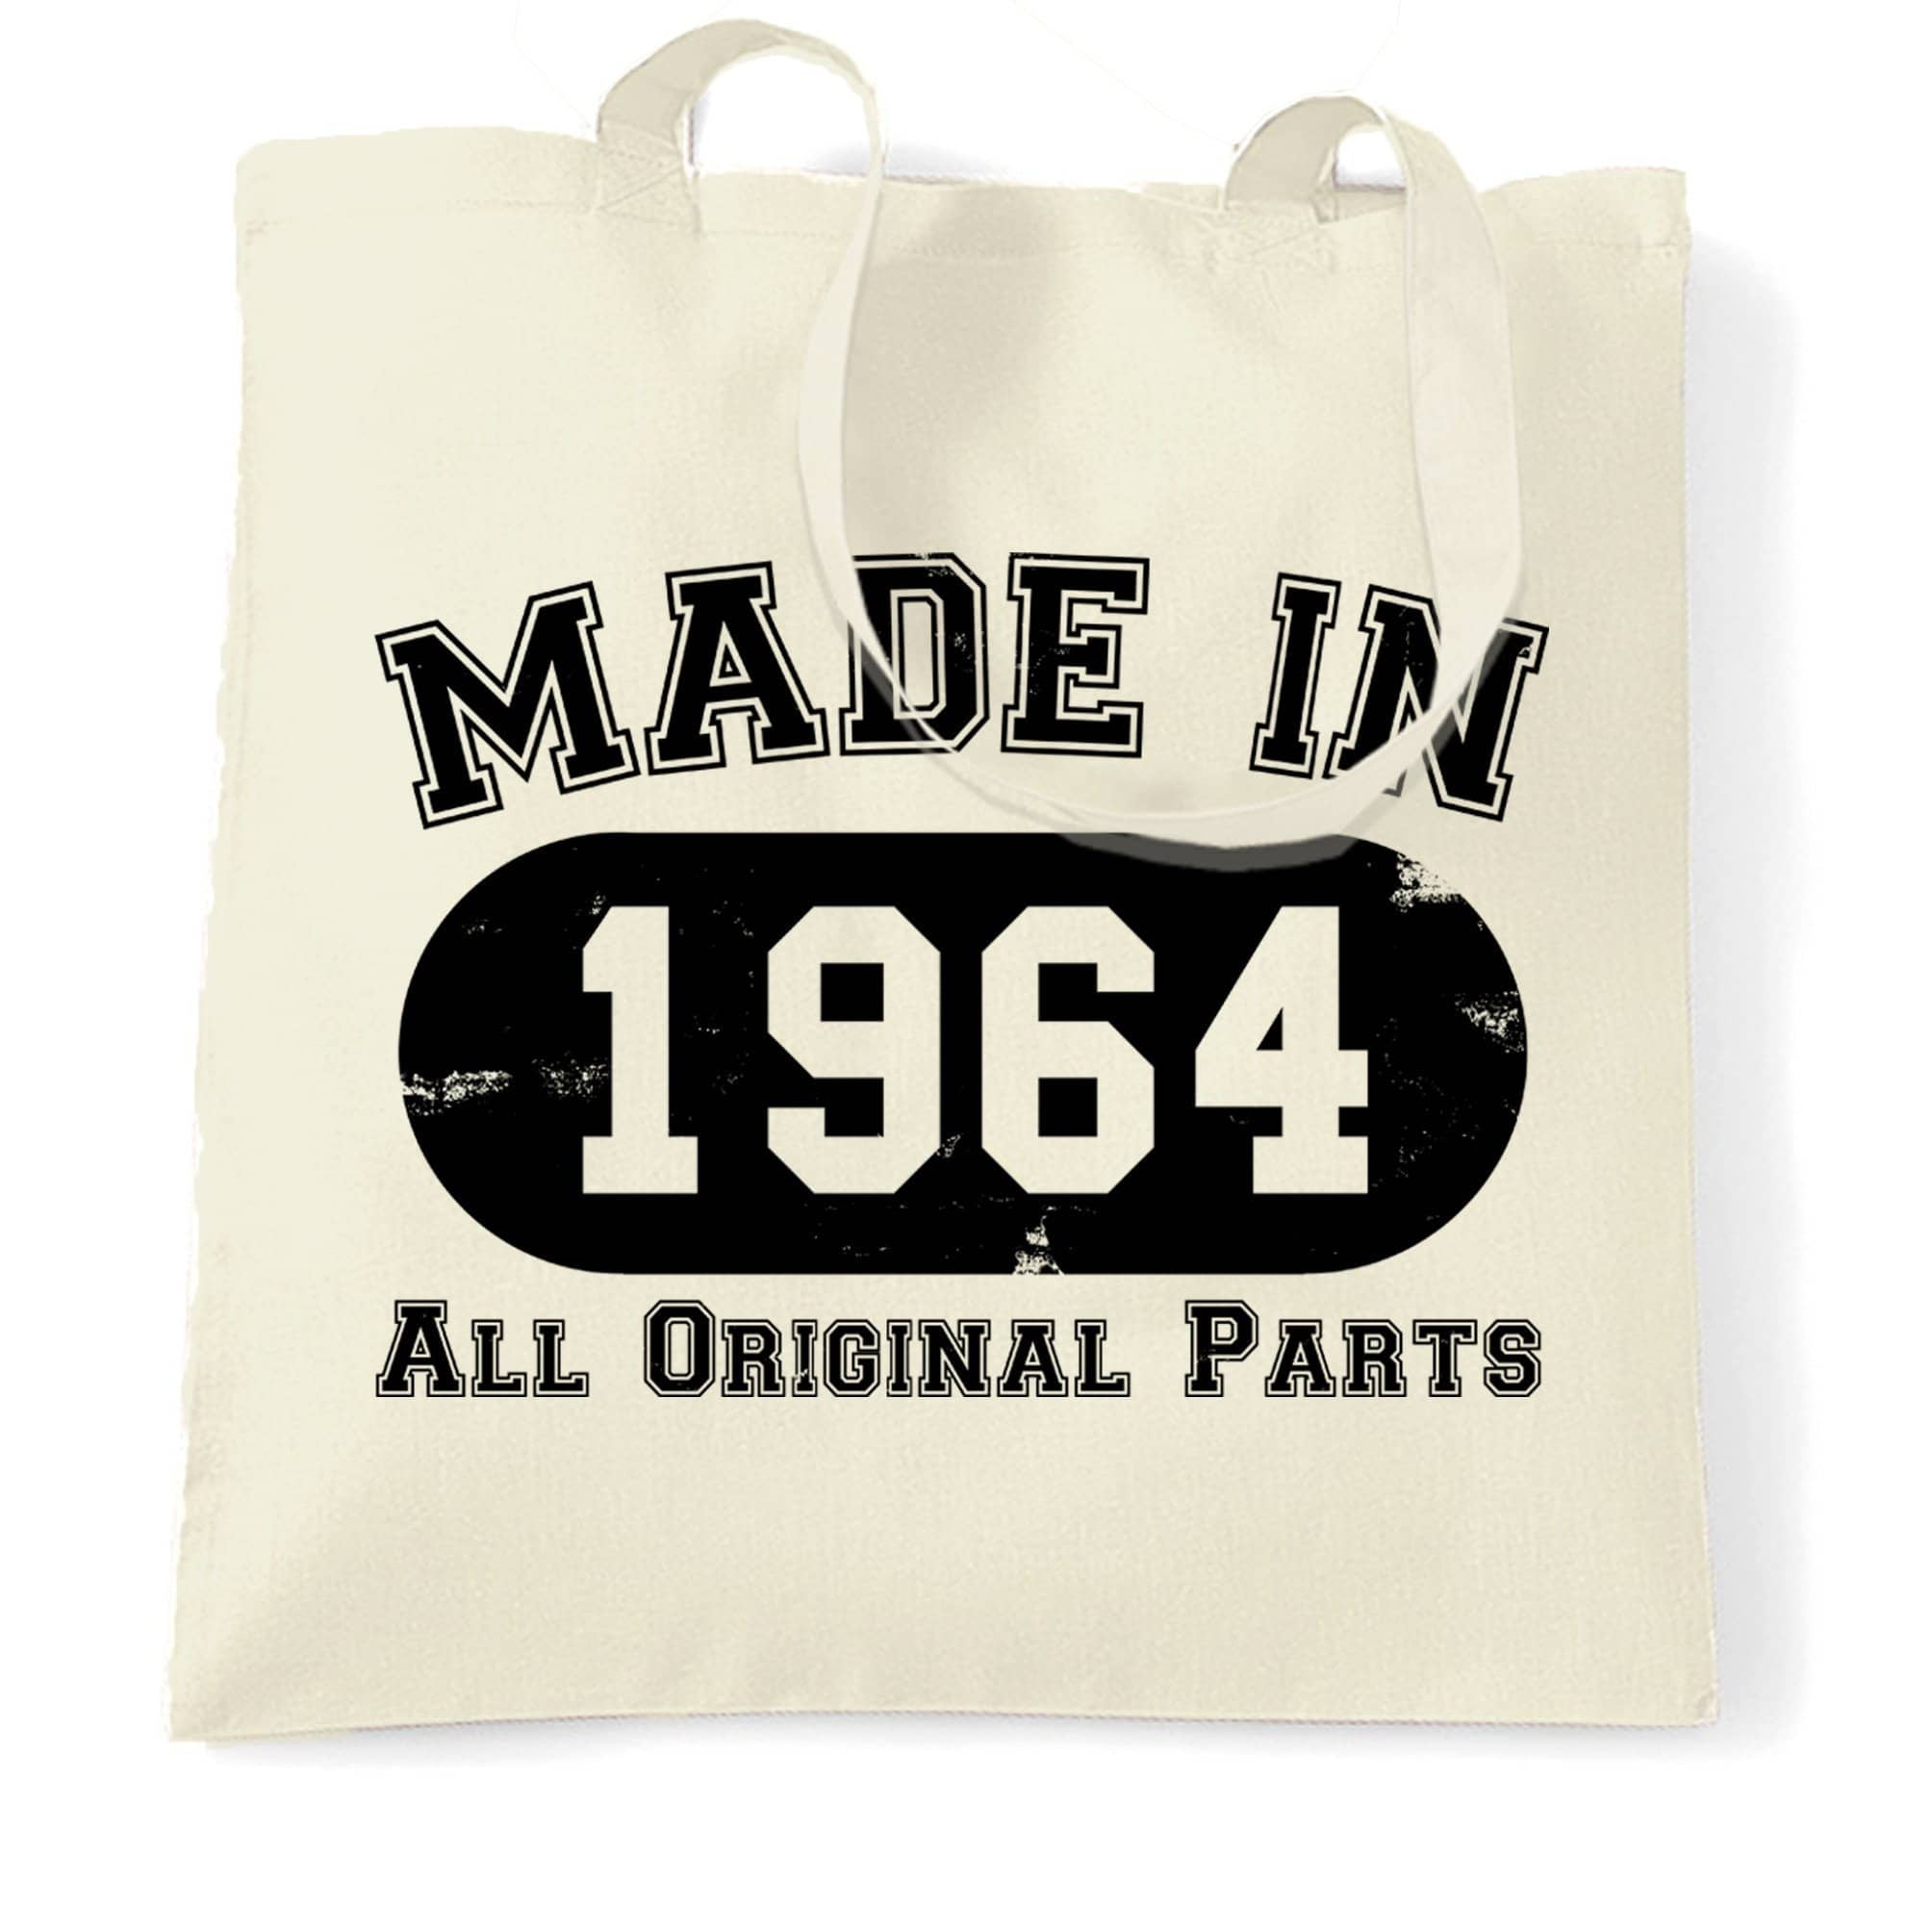 Made in 1964 All Original Parts Tote Bag [Distressed]